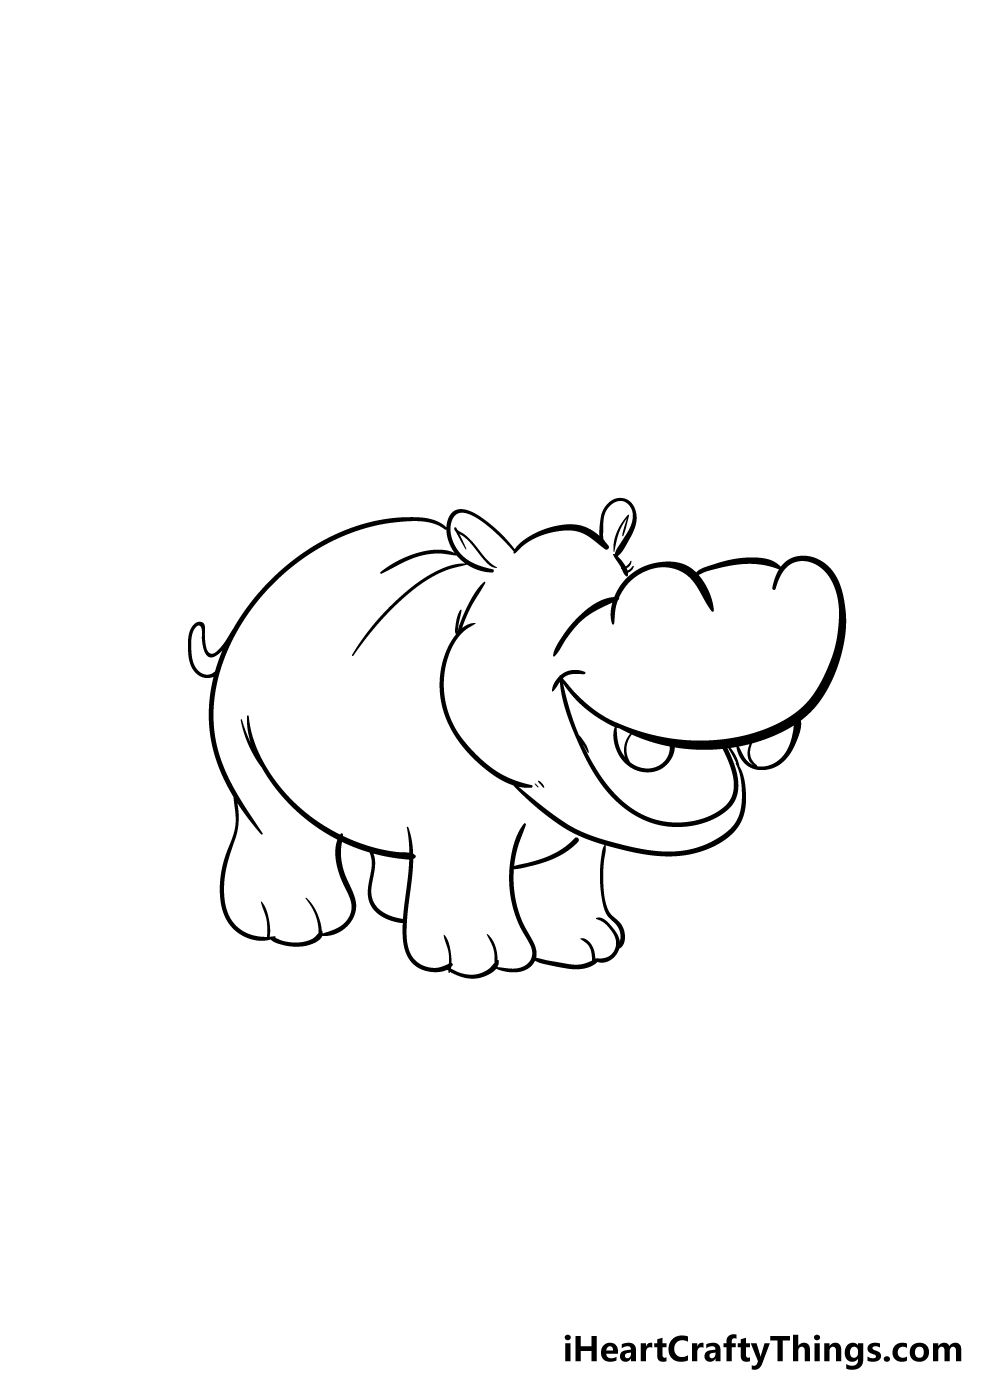 hippo drawing step 4